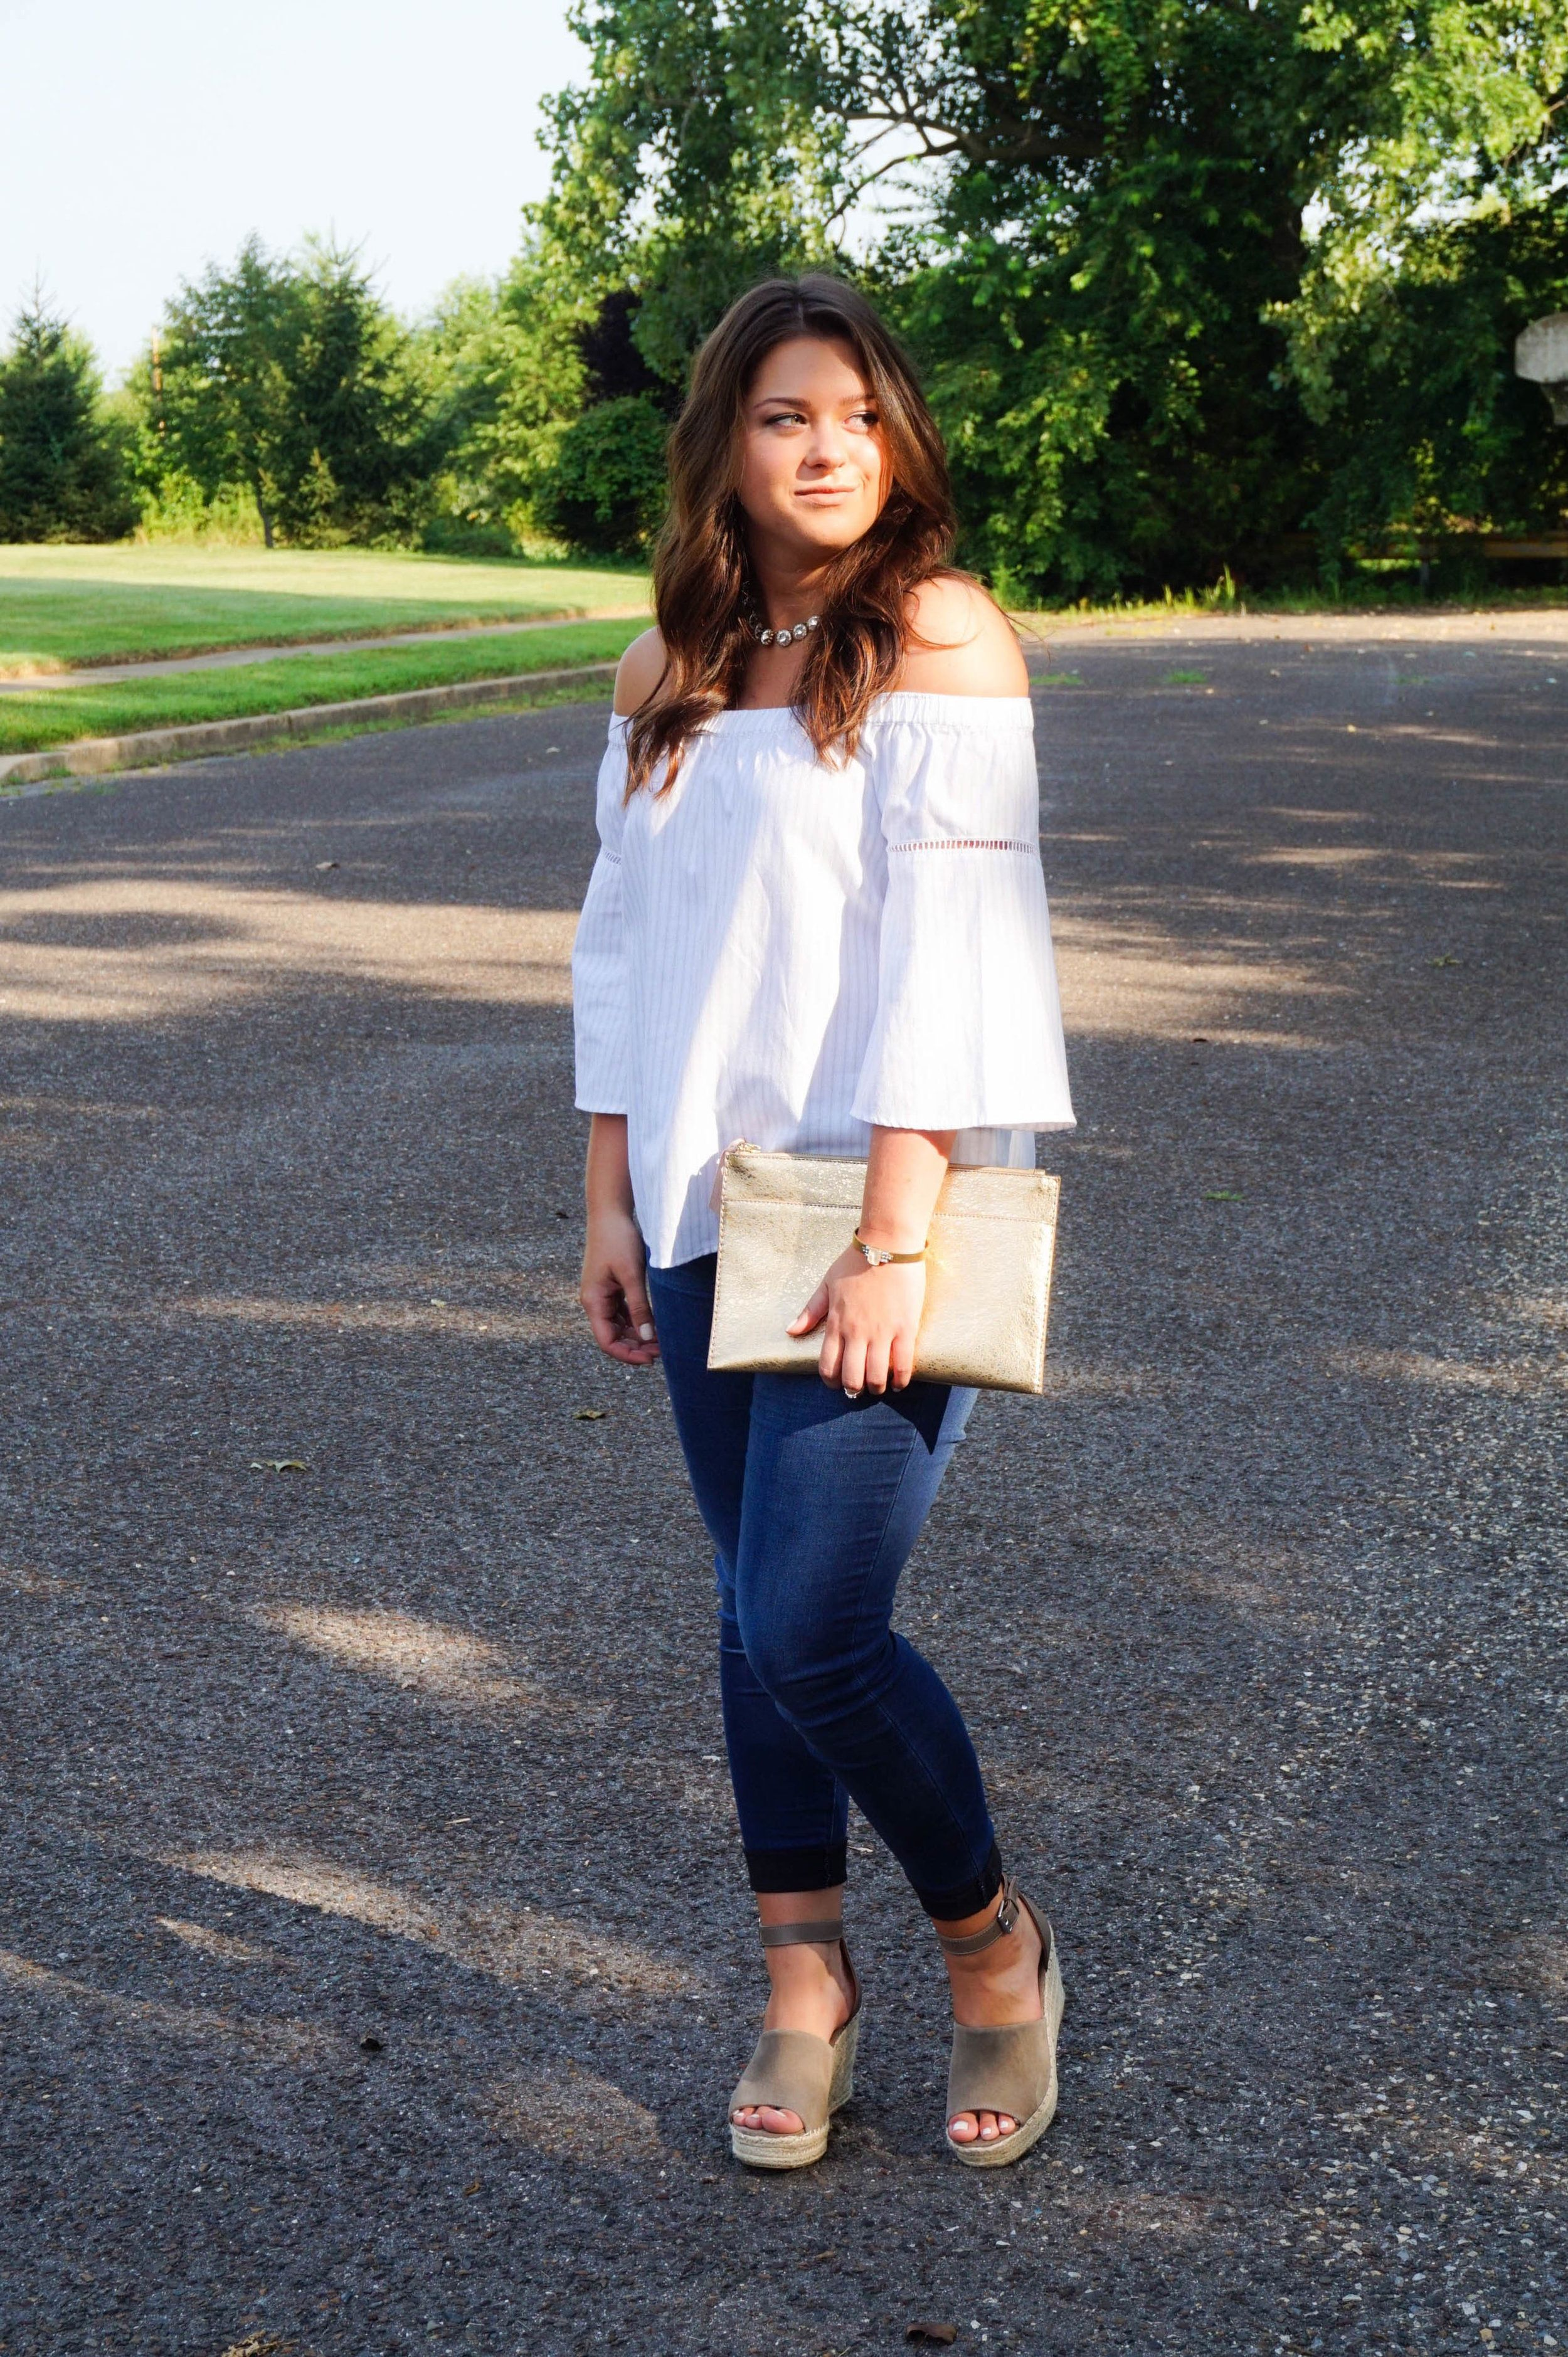 c4312e5c34ef One trend that I absolutely cannot wait to bring into the new season is off- the-shoulder tops... for real